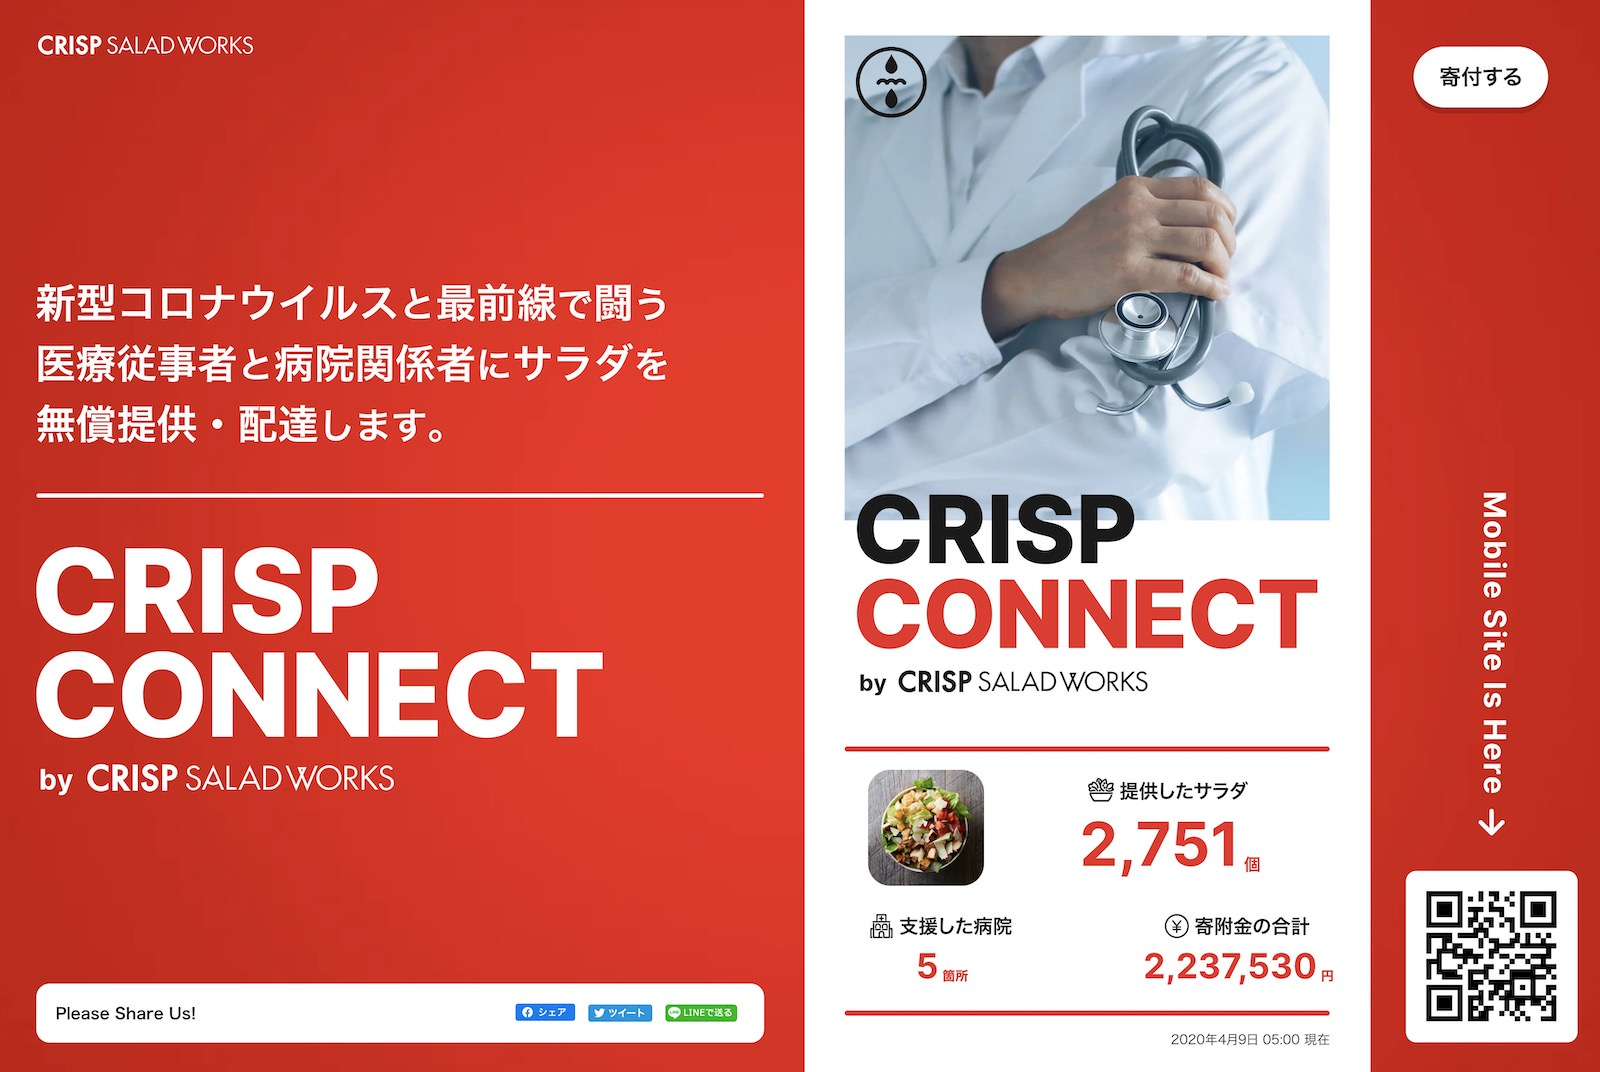 Crisp connect for workers